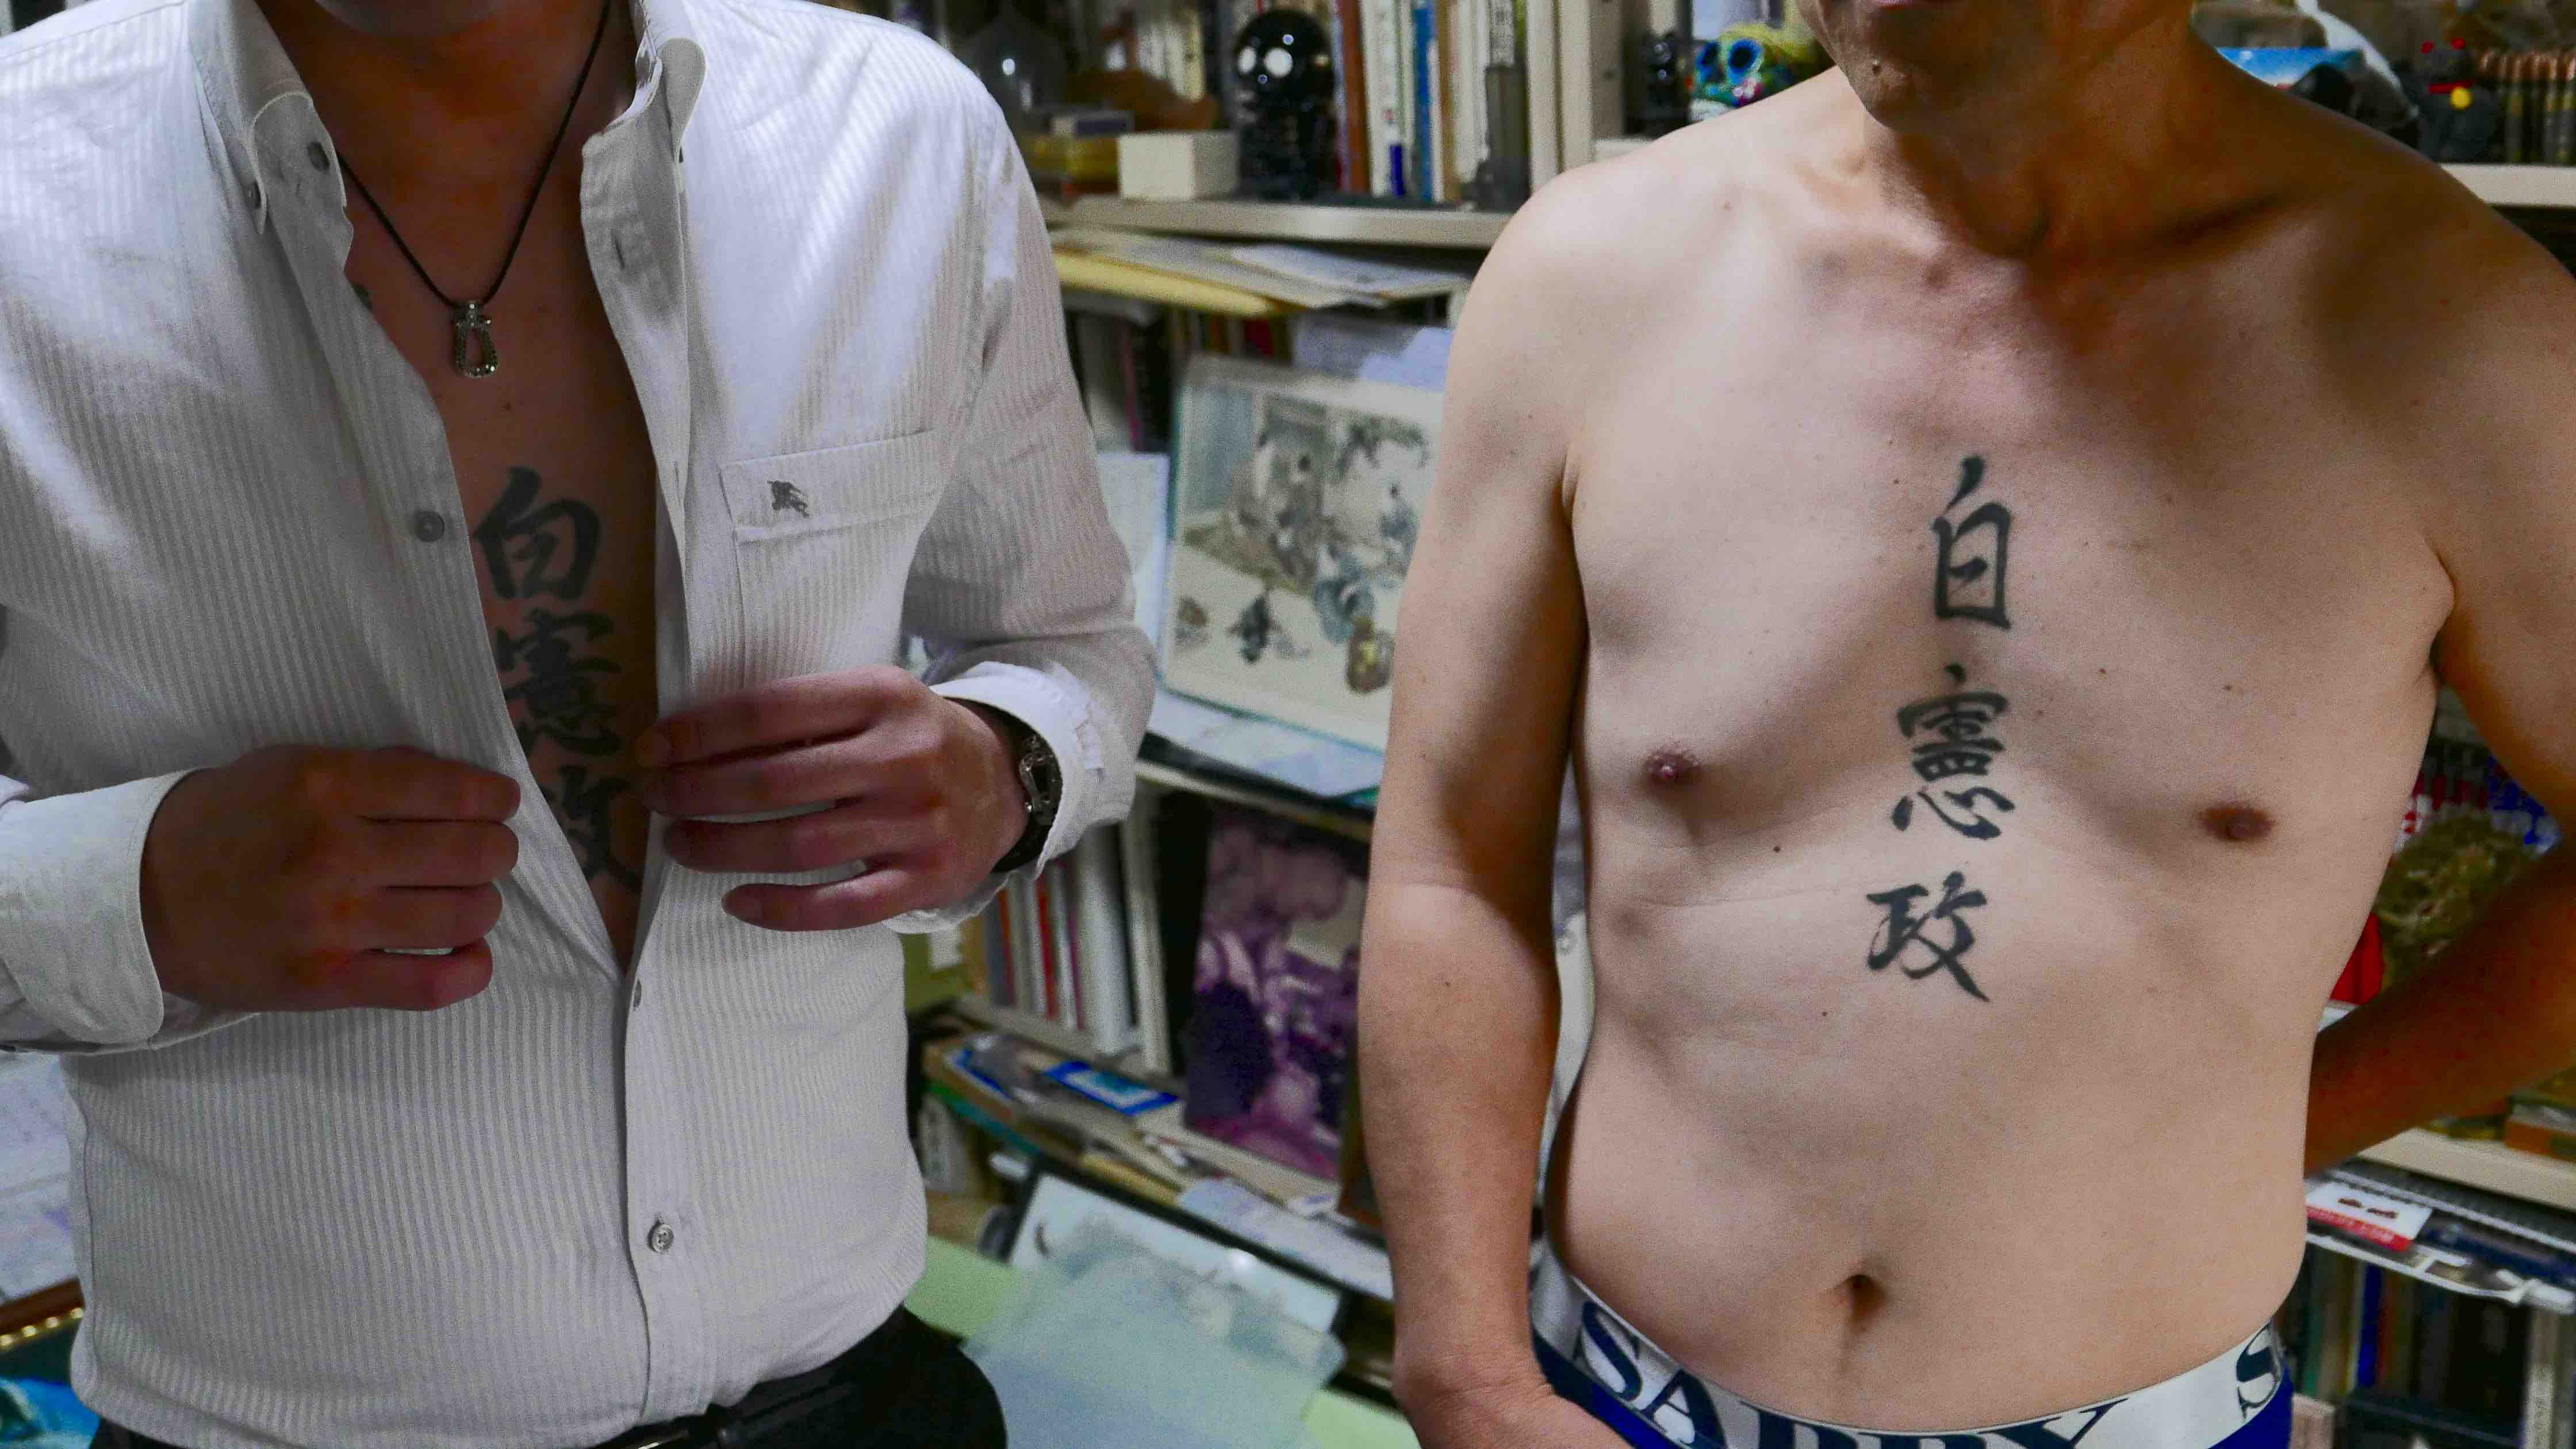 The Tattooist For The Yakuza Explains Why Tattoos Should